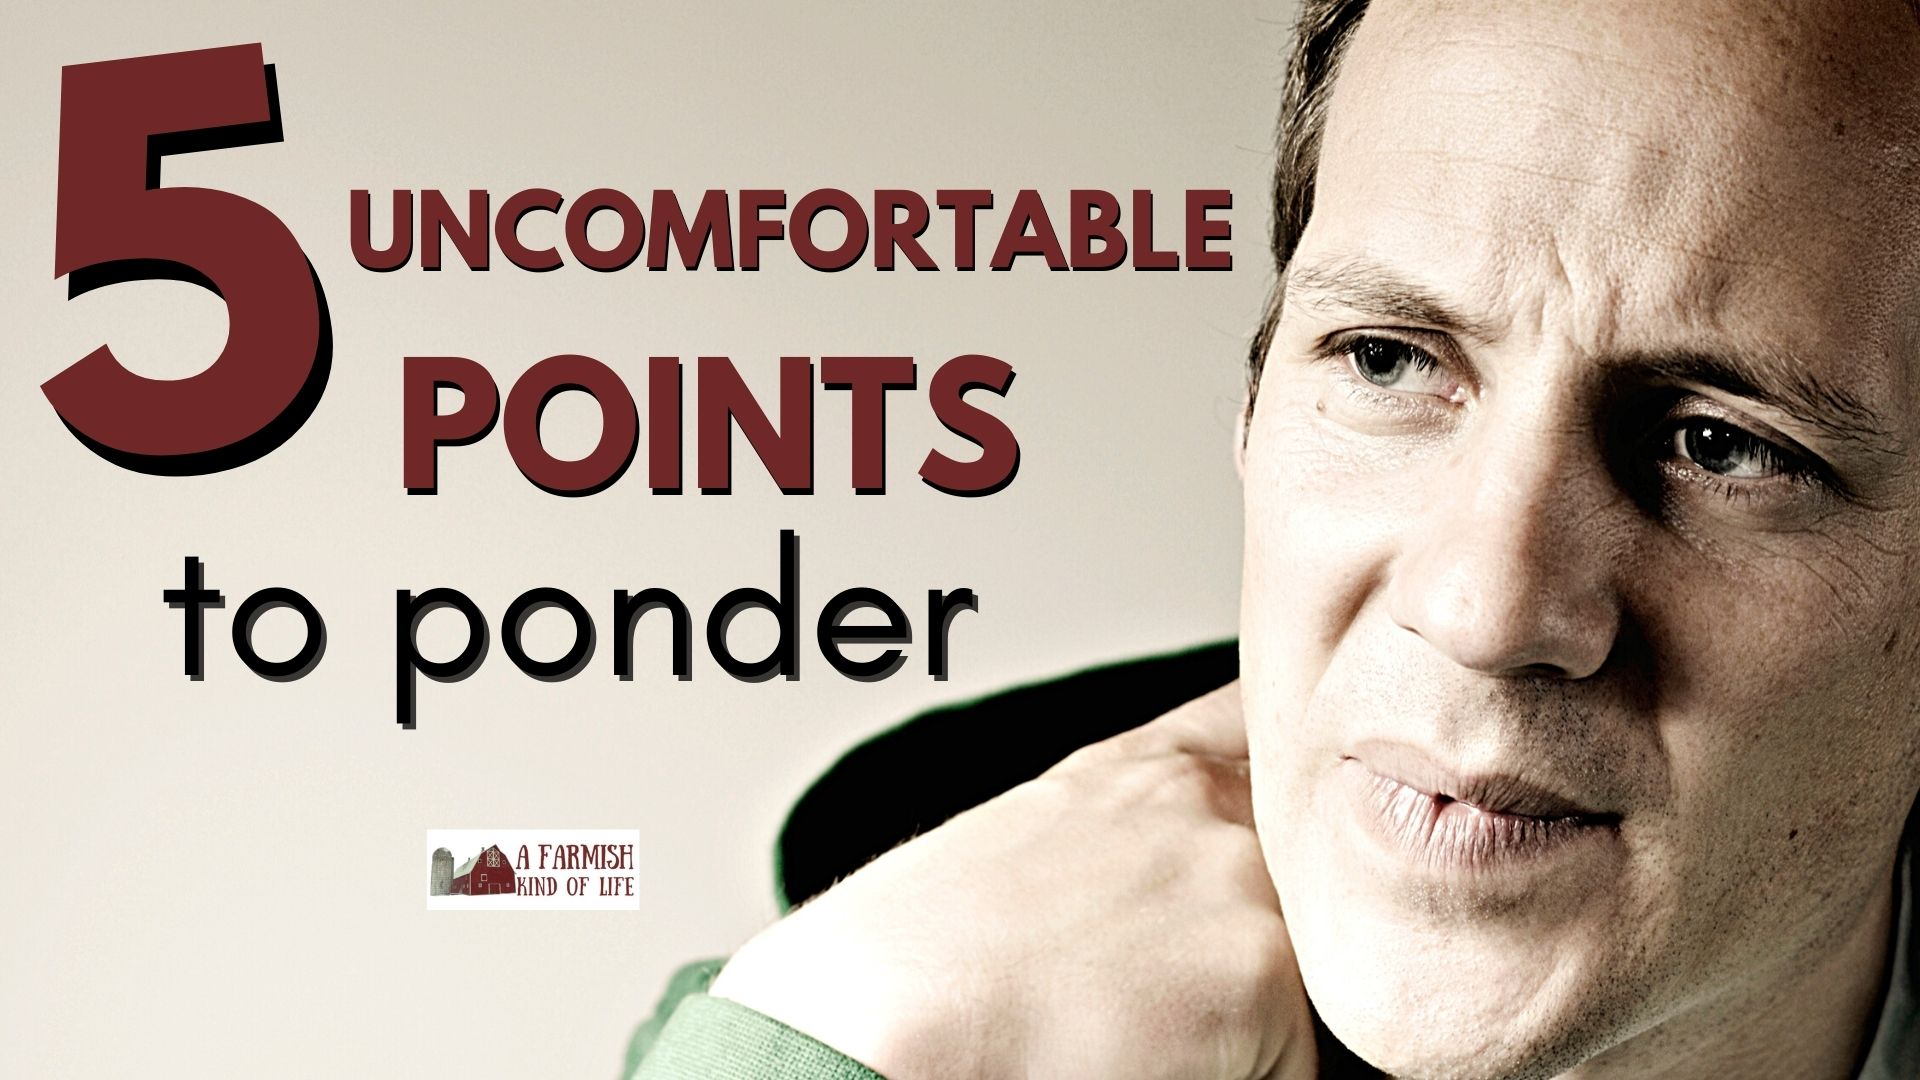 161: 5 Uncomfortable Points to Consider